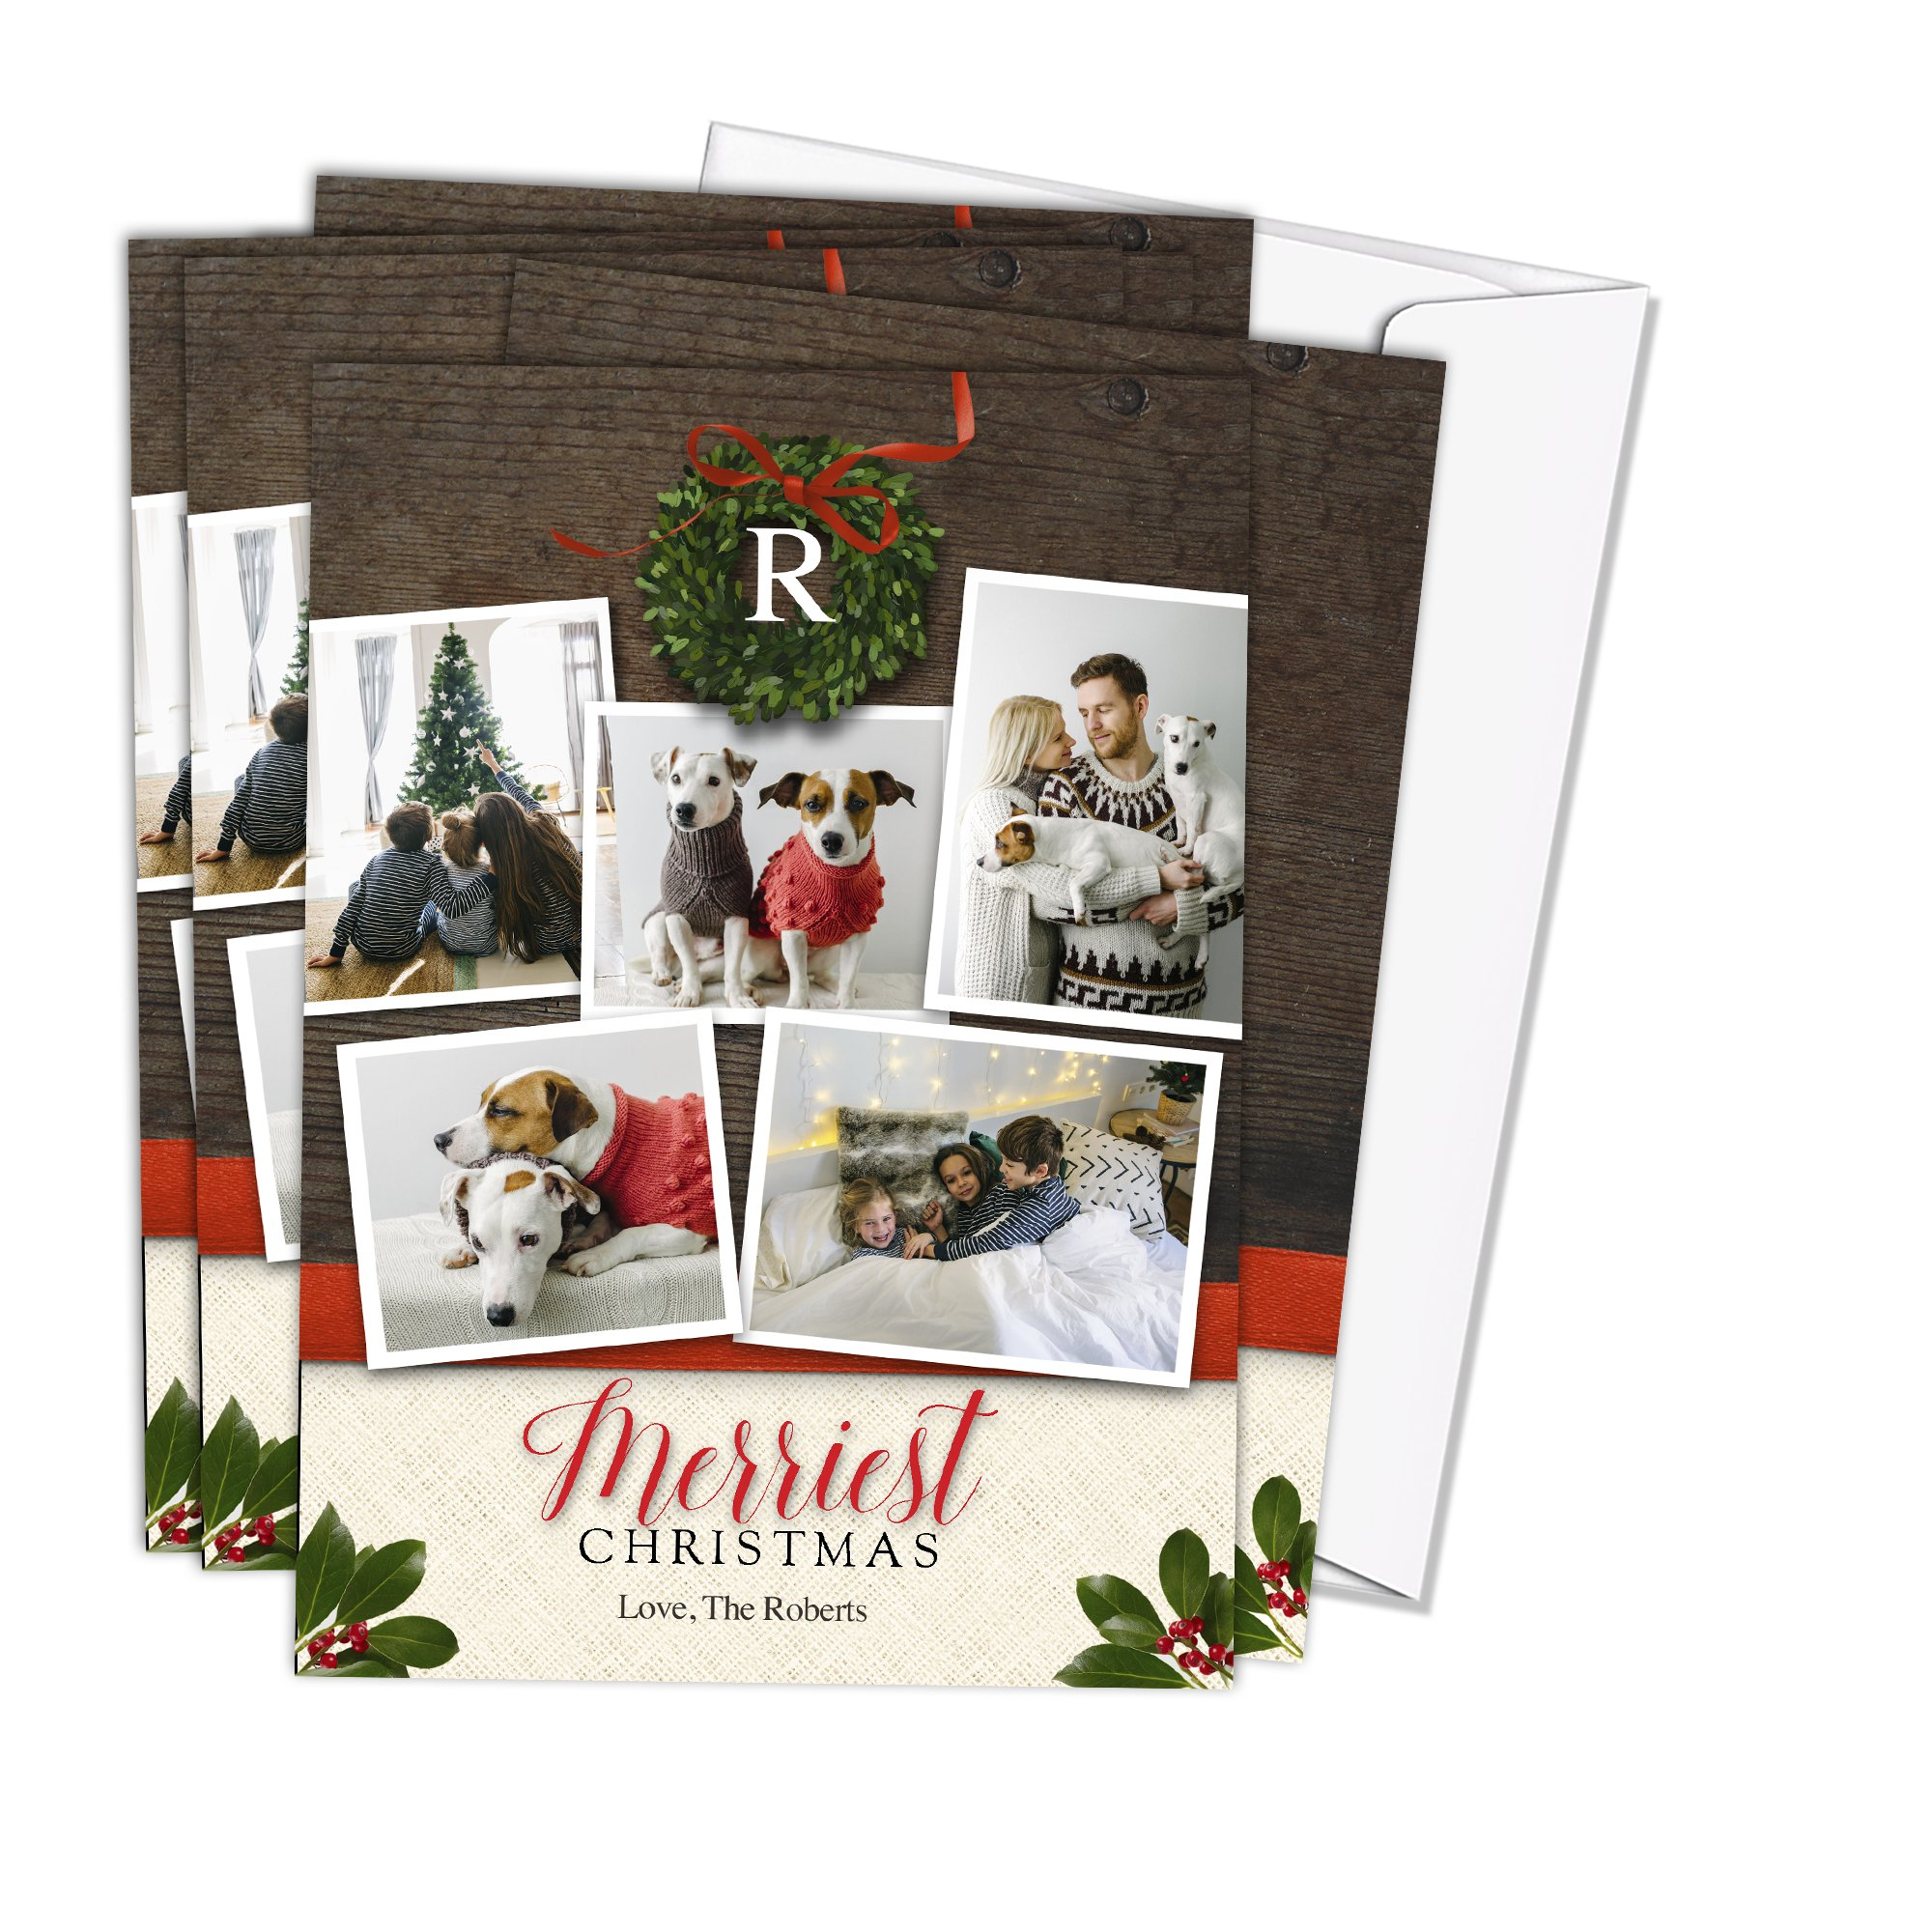 5x7 Photo Card with Envelope - Choose From Over 3,000 Designs